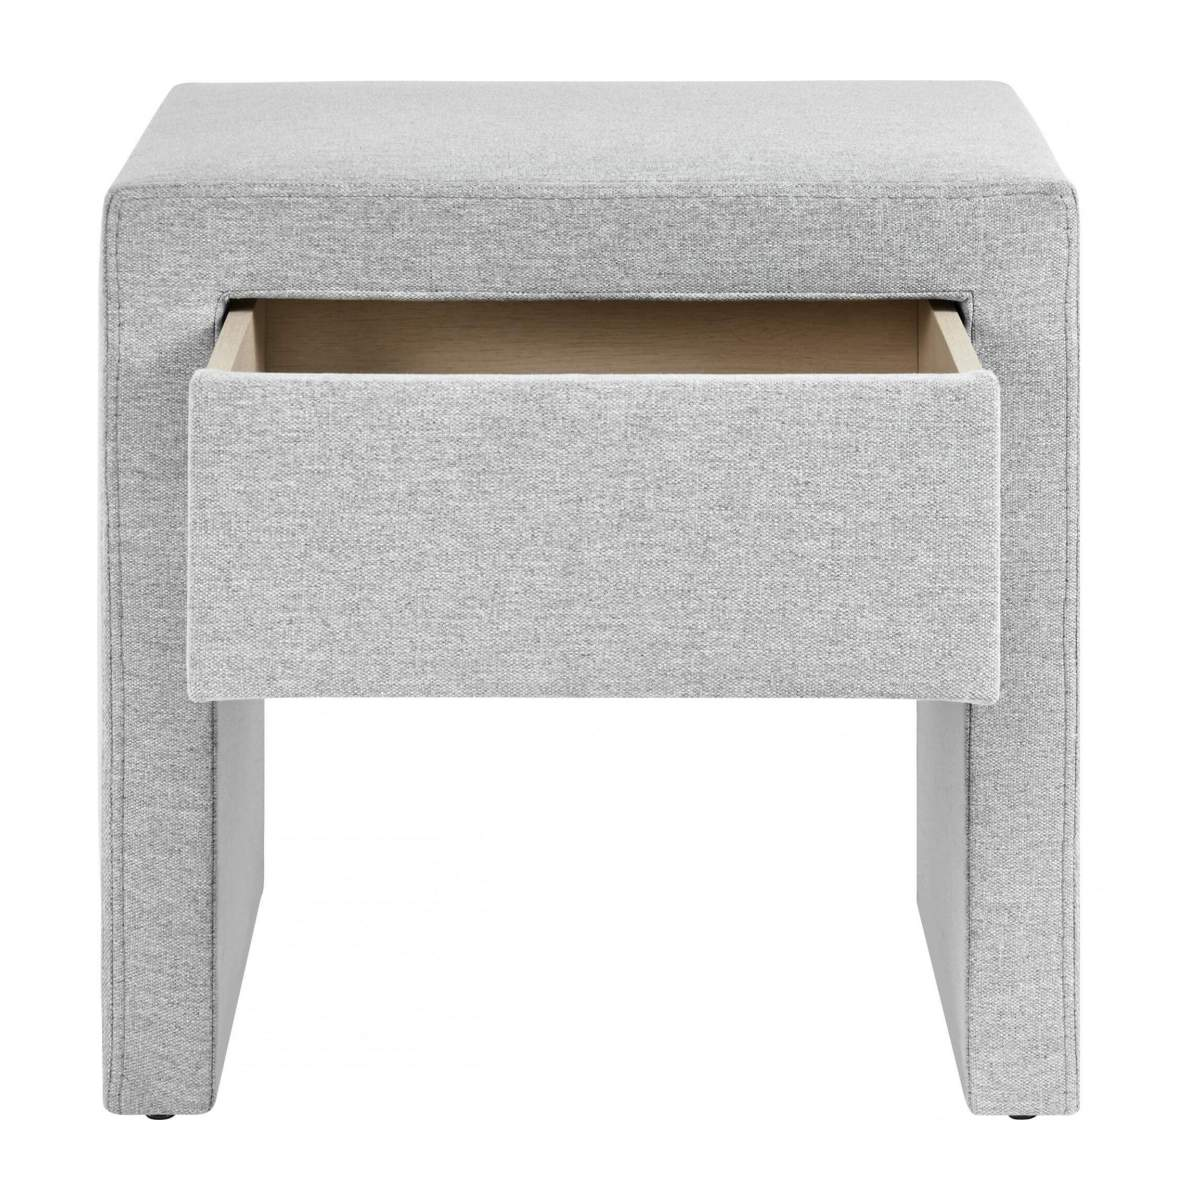 Fabric bedside table n°3